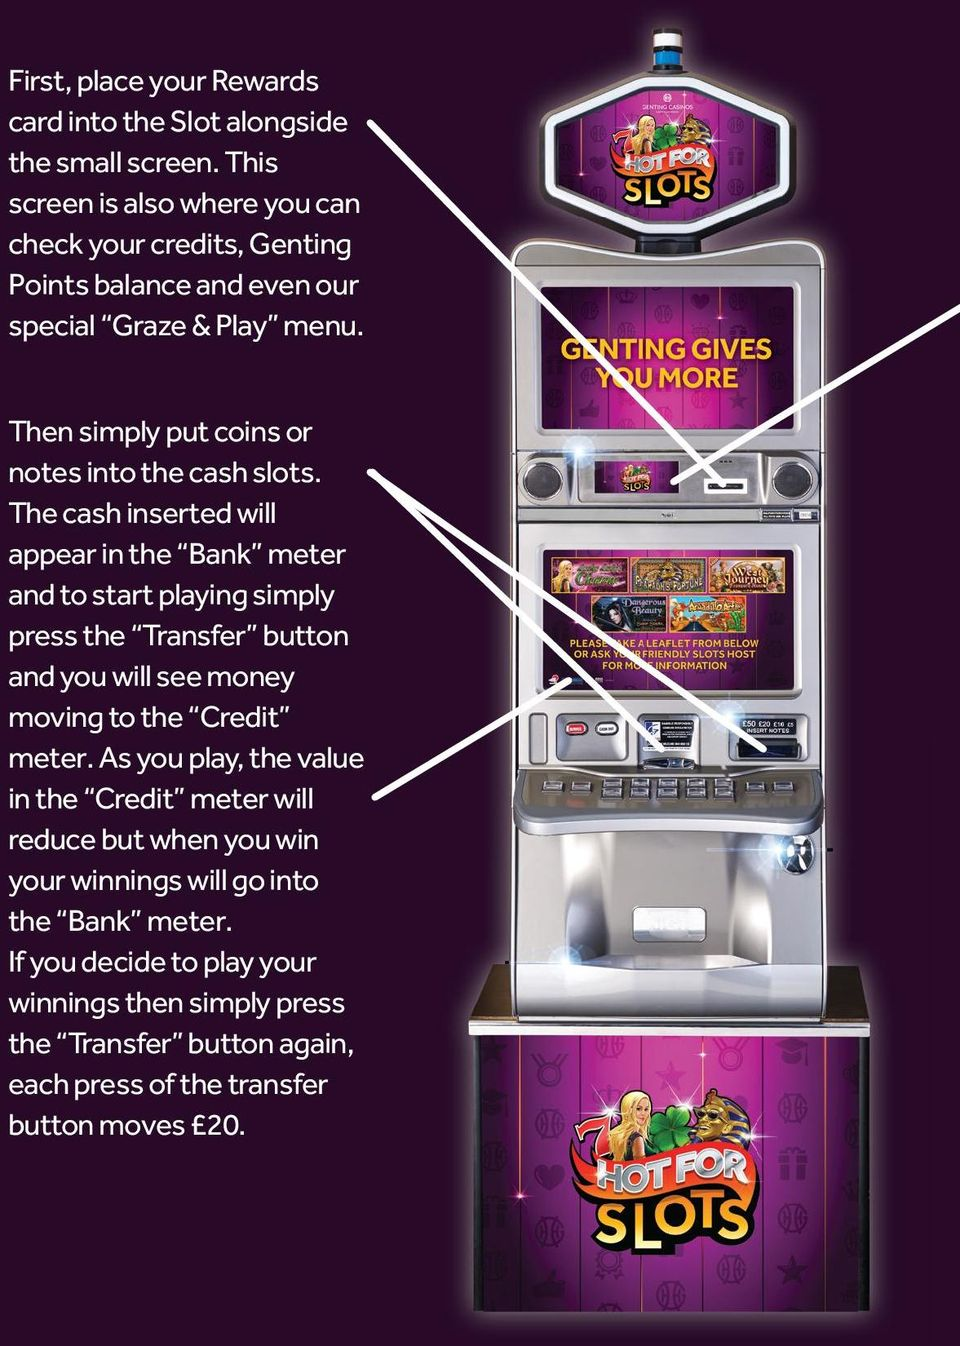 Then simply put coins or notes into the cash slots.